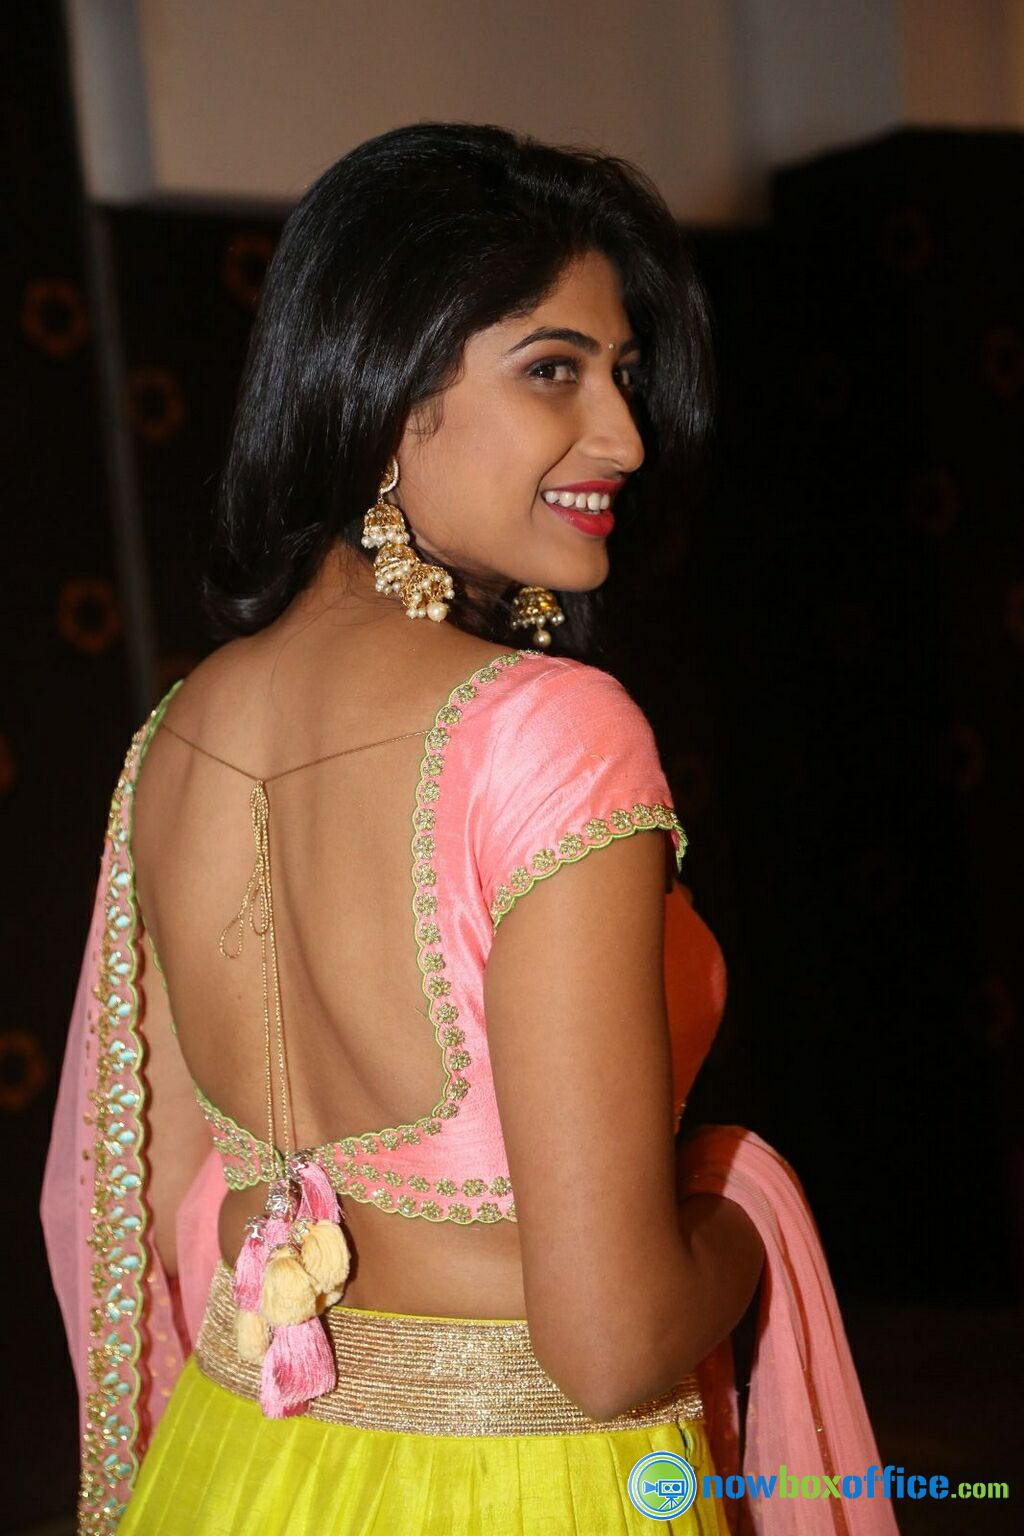 Bollywood Actress Without Clothes HOT CELEBRITIES ALL OVER Backless photos of bollywood actress